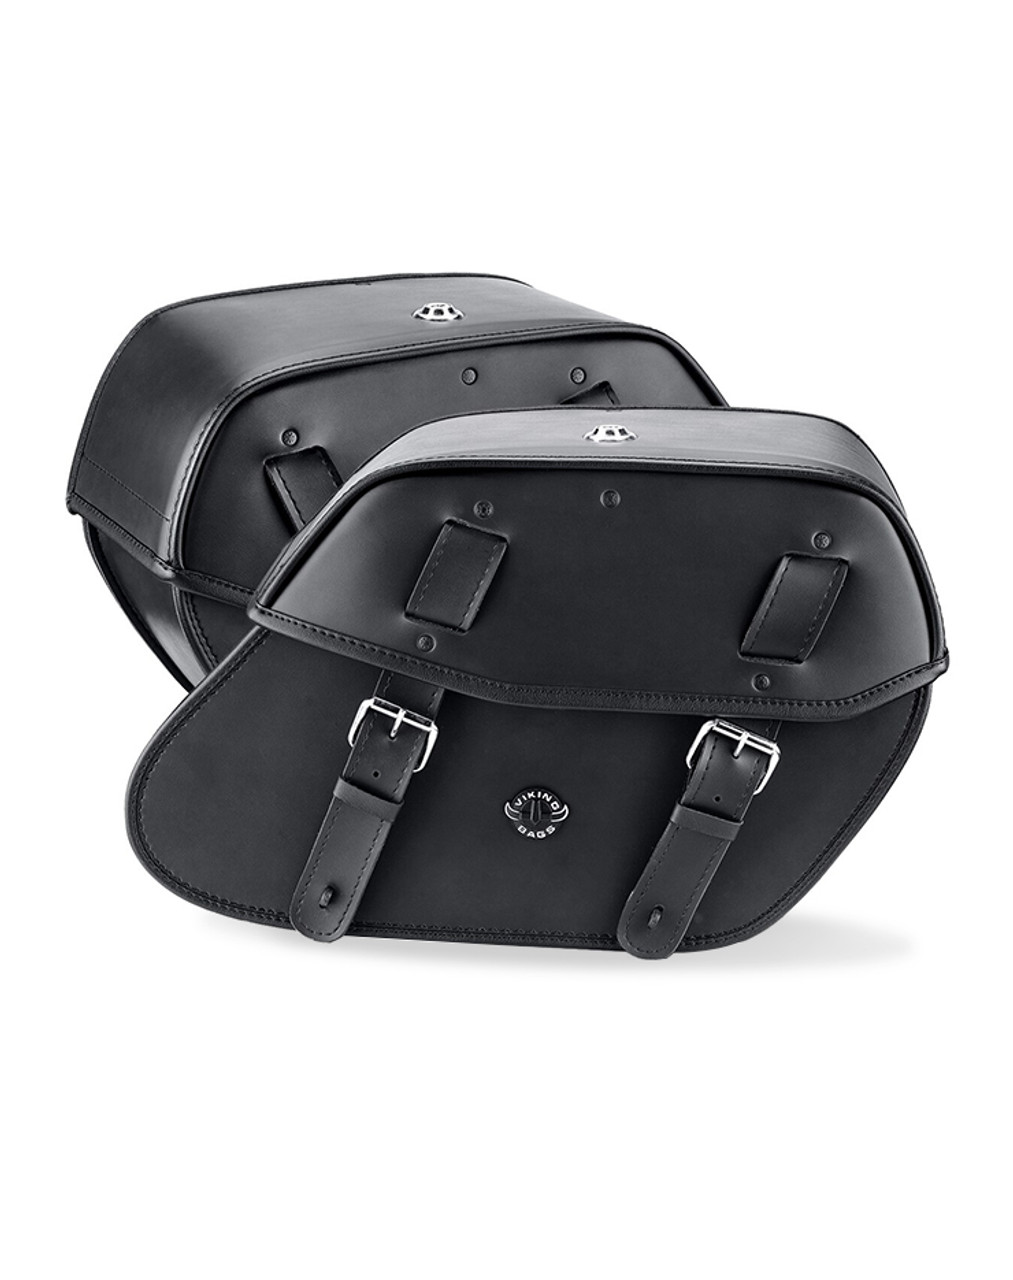 VikingBags Odin Large Double Strap Leather Motorcycle Saddlebags Both Bags View